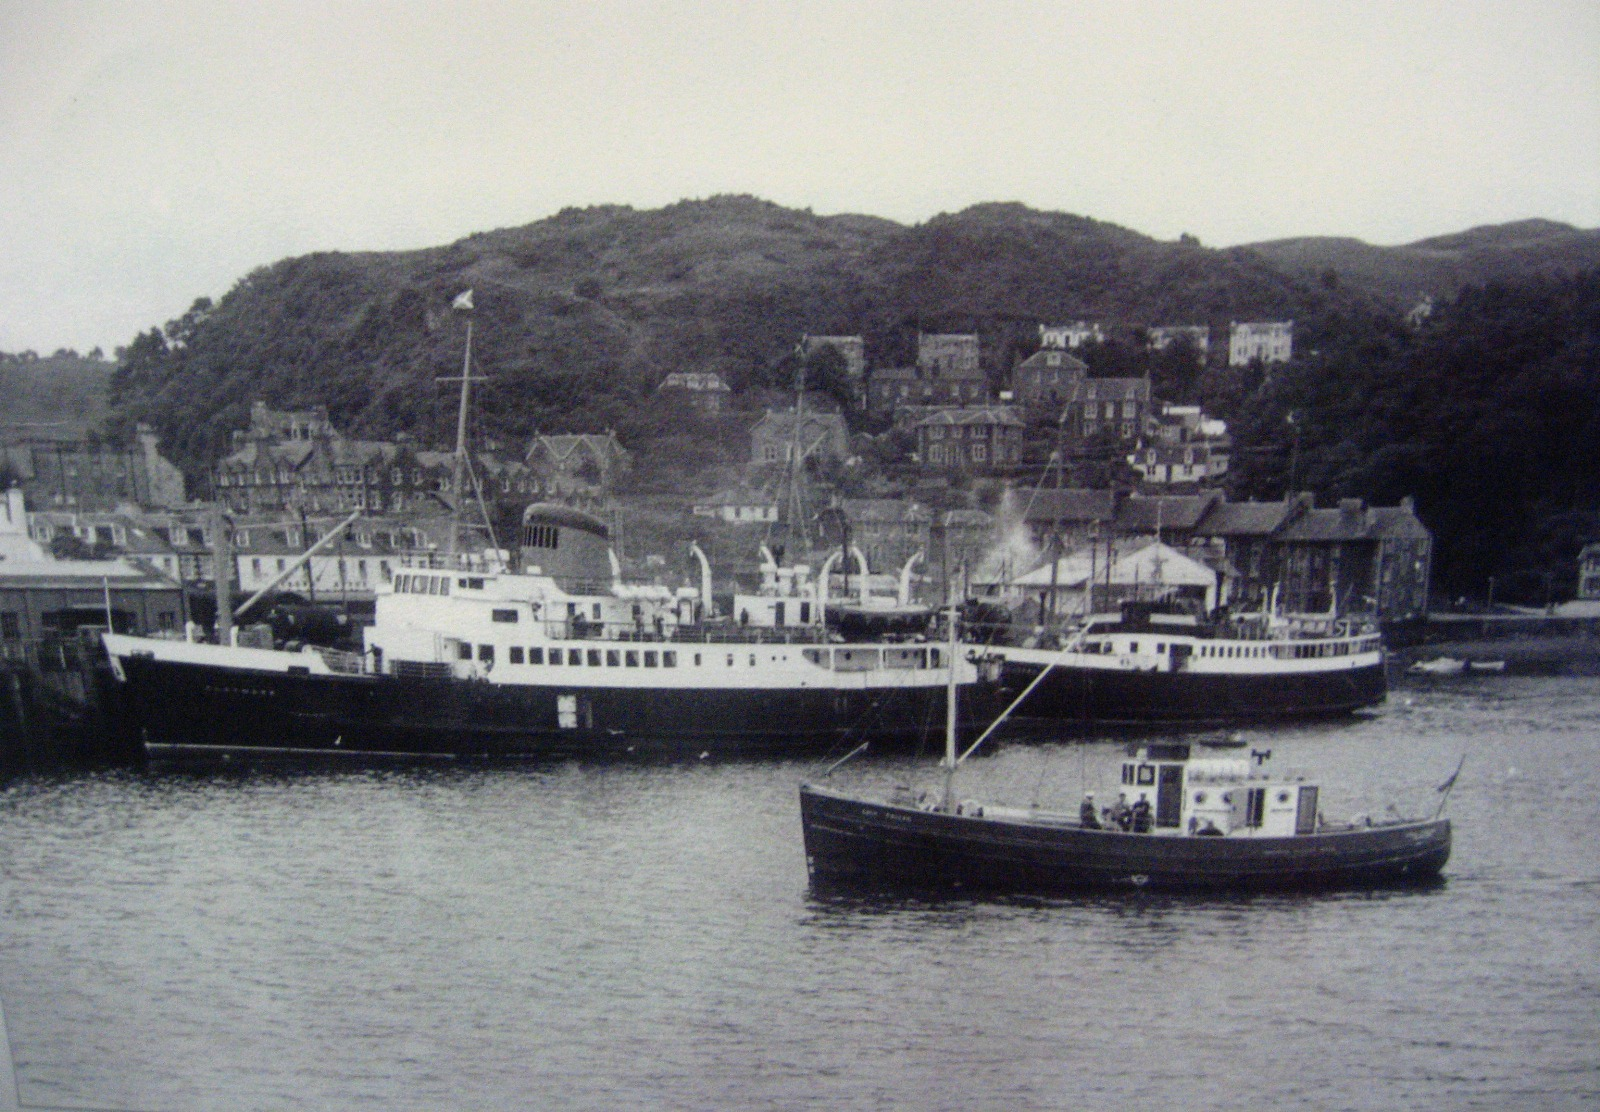 Claymore, Lochearn and Toscaig at Oban